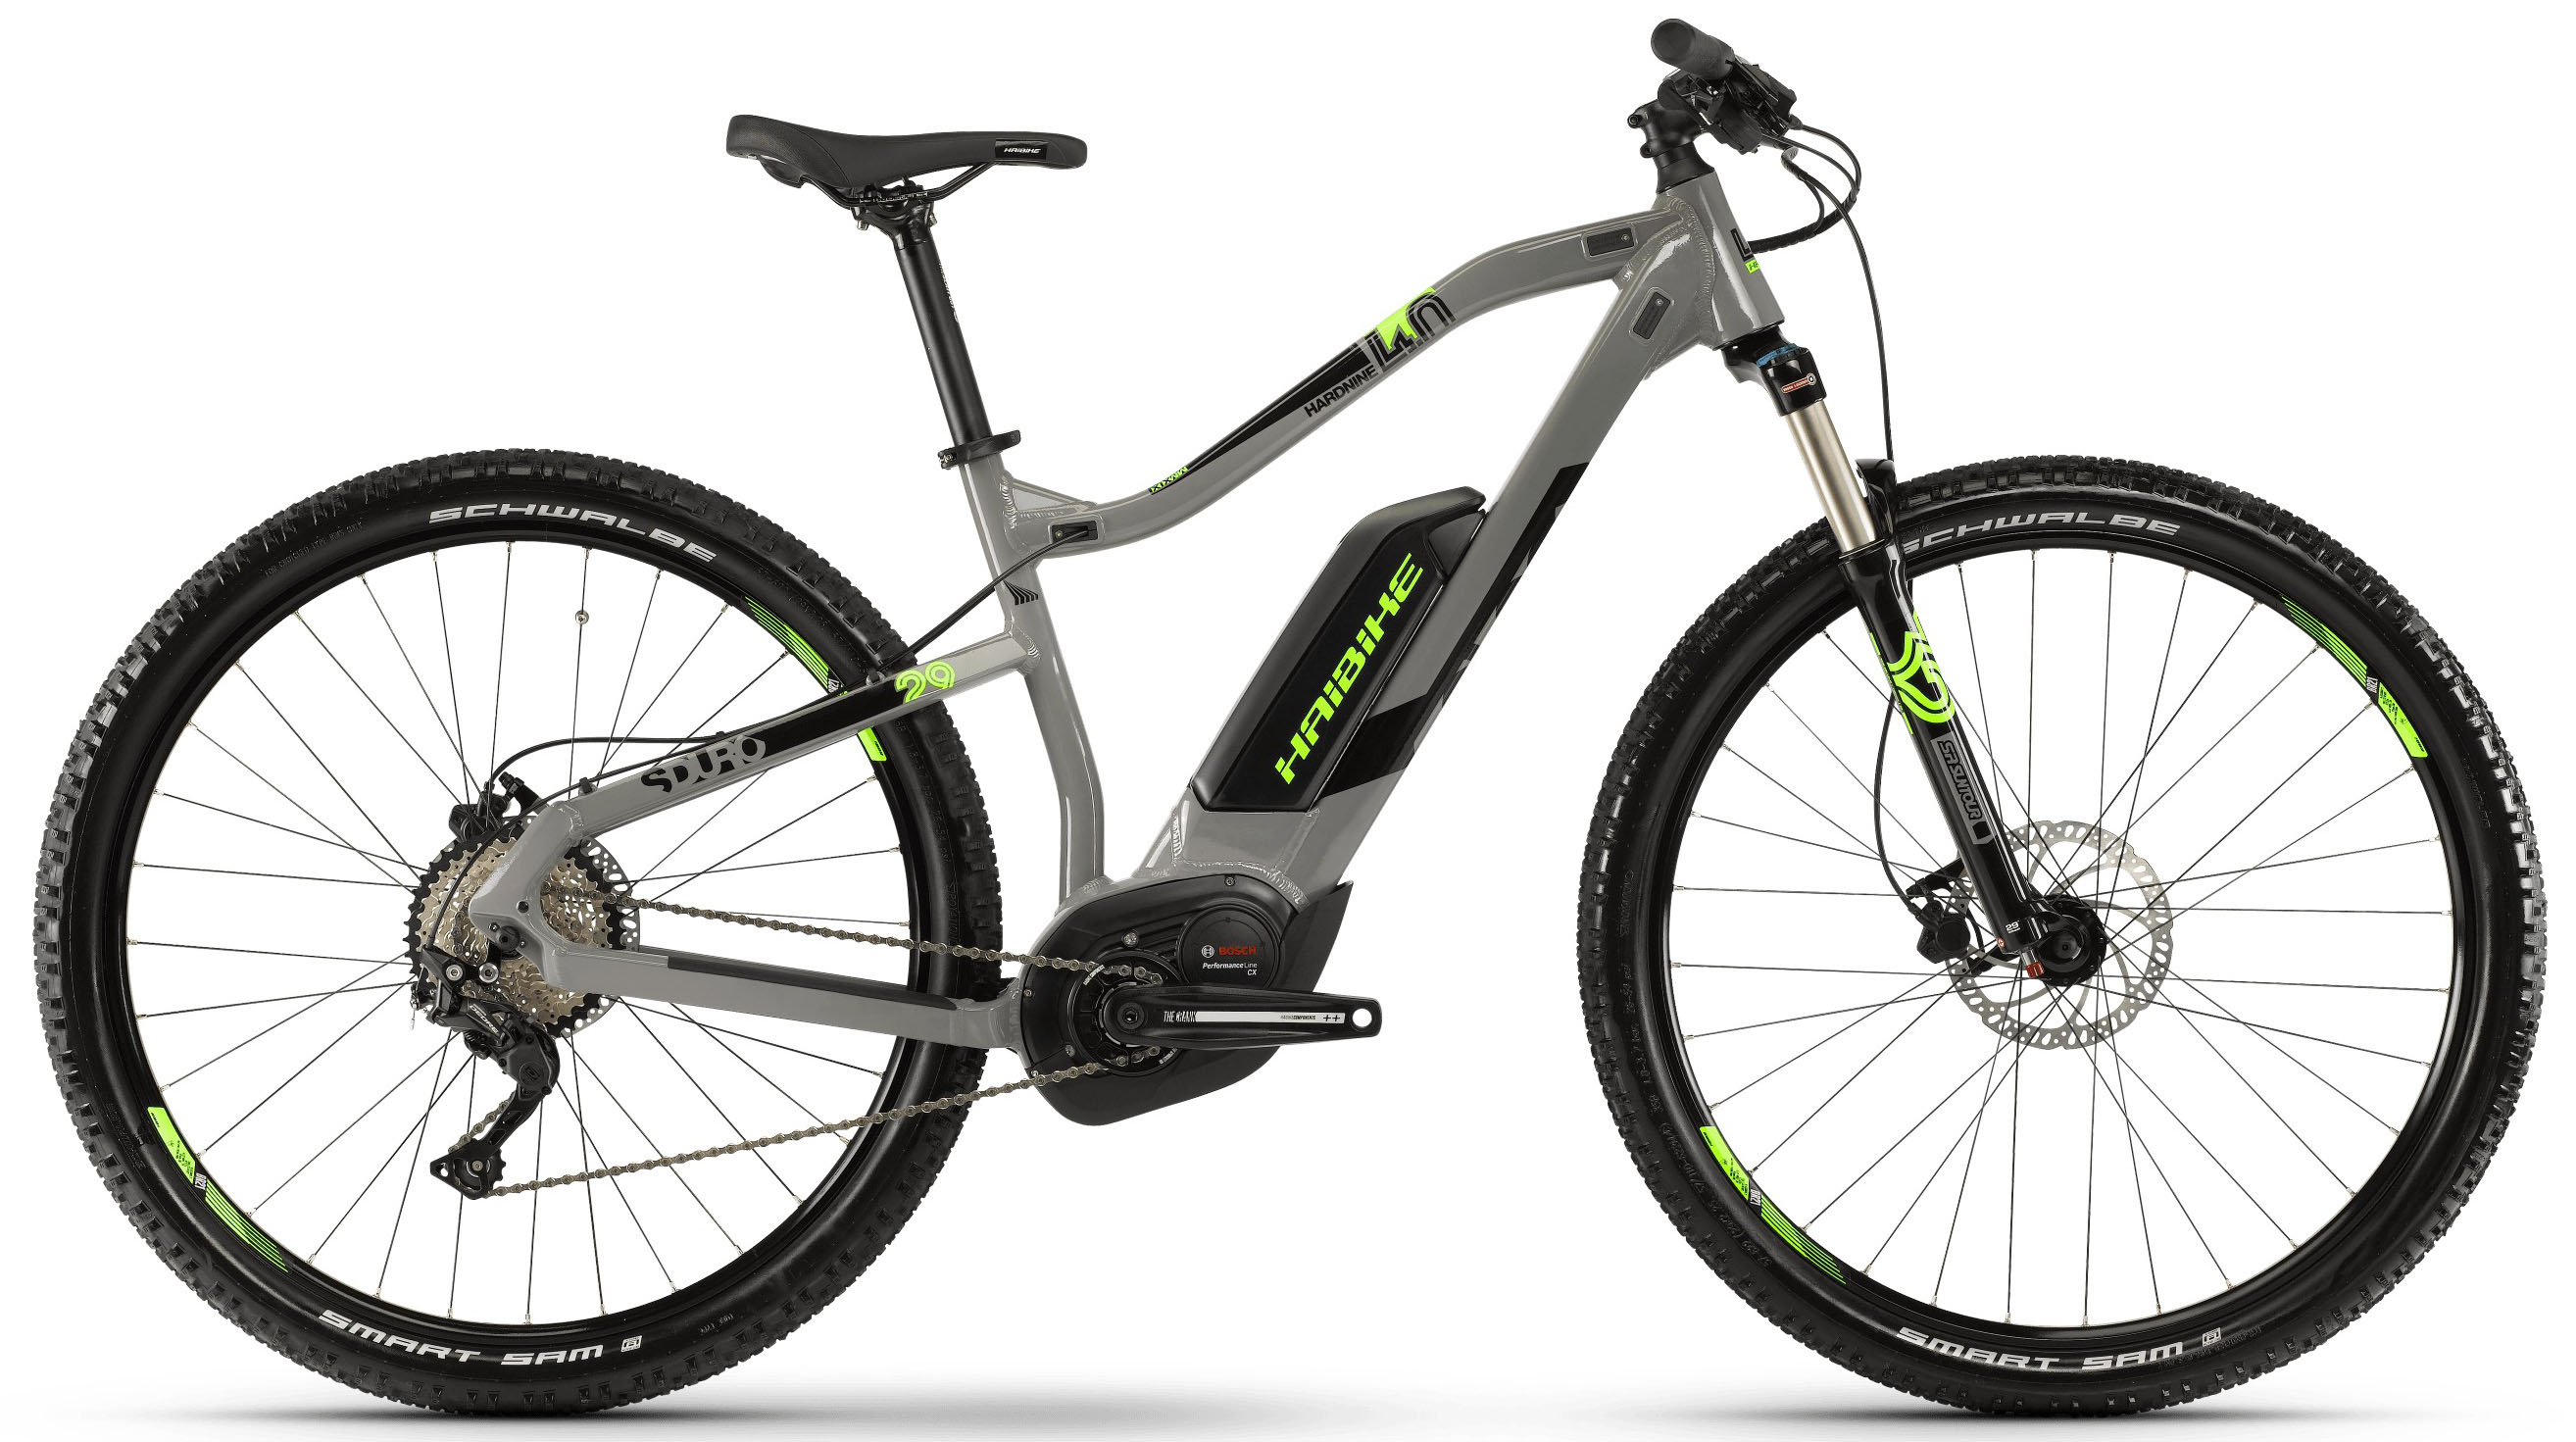 Велосипед Haibike SDURO HardNine 4.0 500Wh 10-G Deore 2019 велосипед haibike sduro trekking 4 0 he 400wh 10s deore 2018